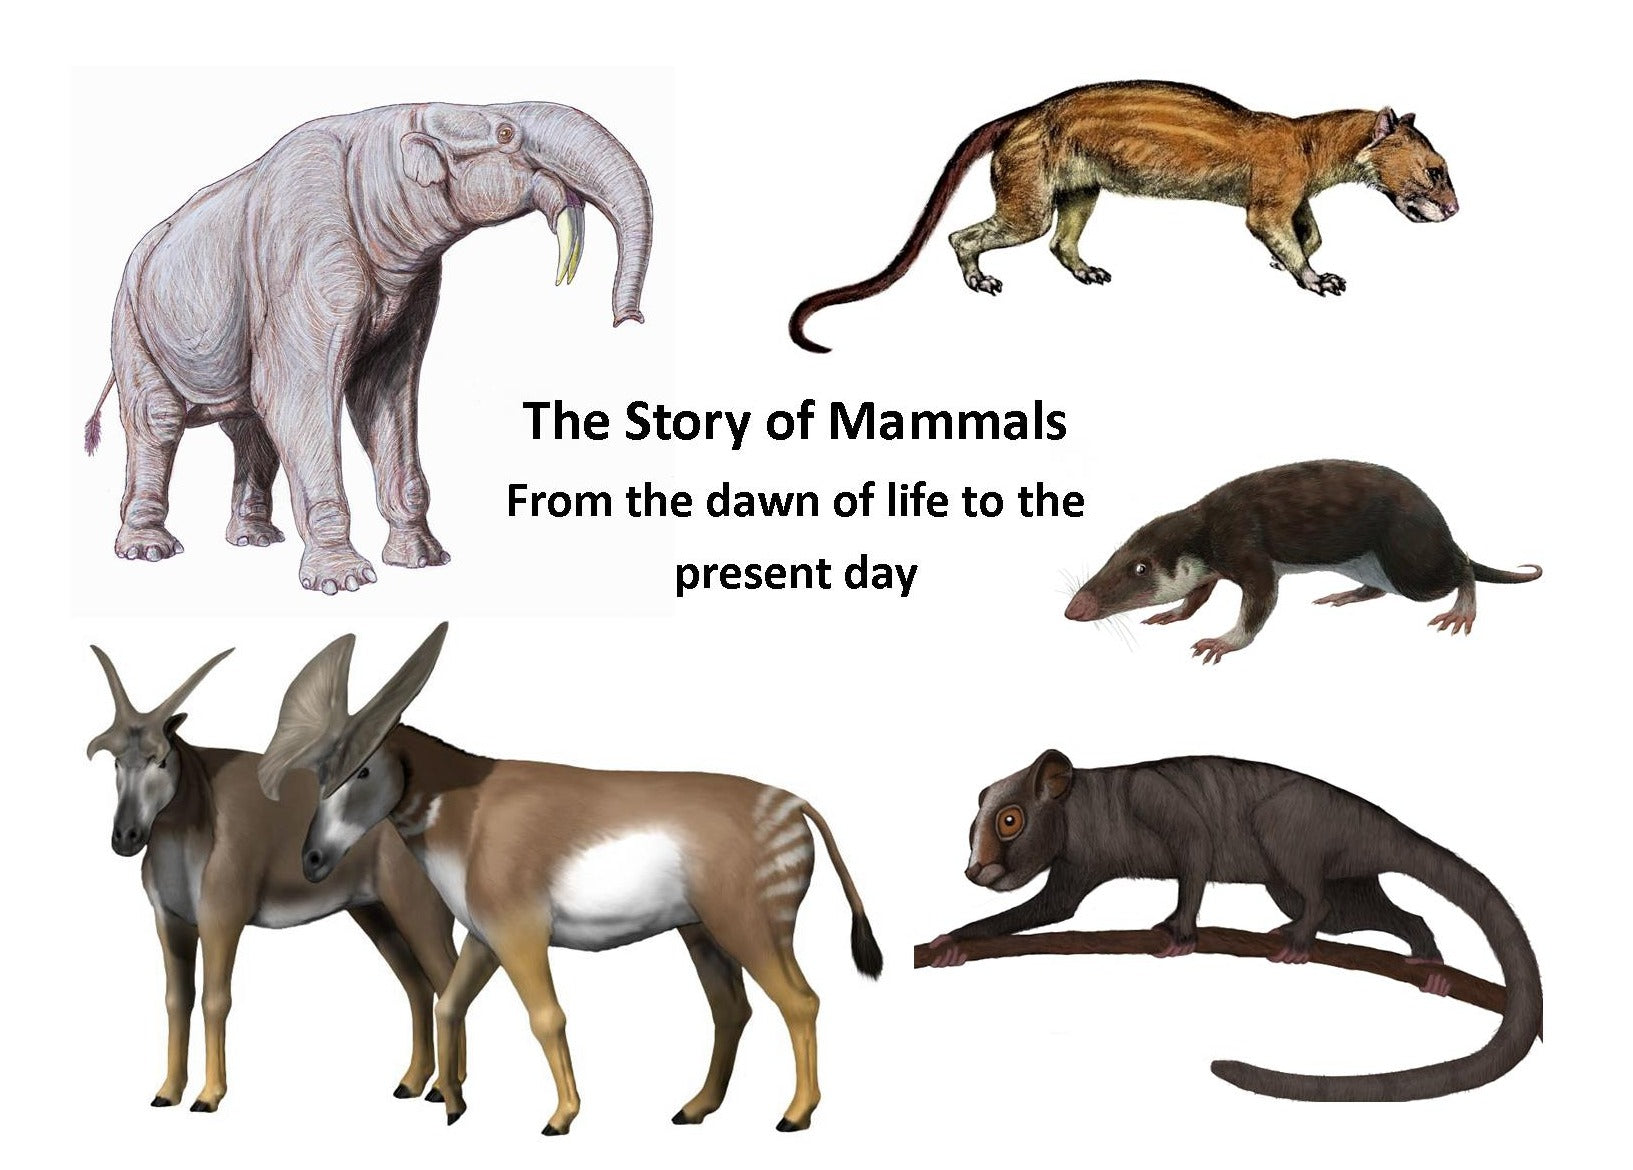 The Story of Mammals